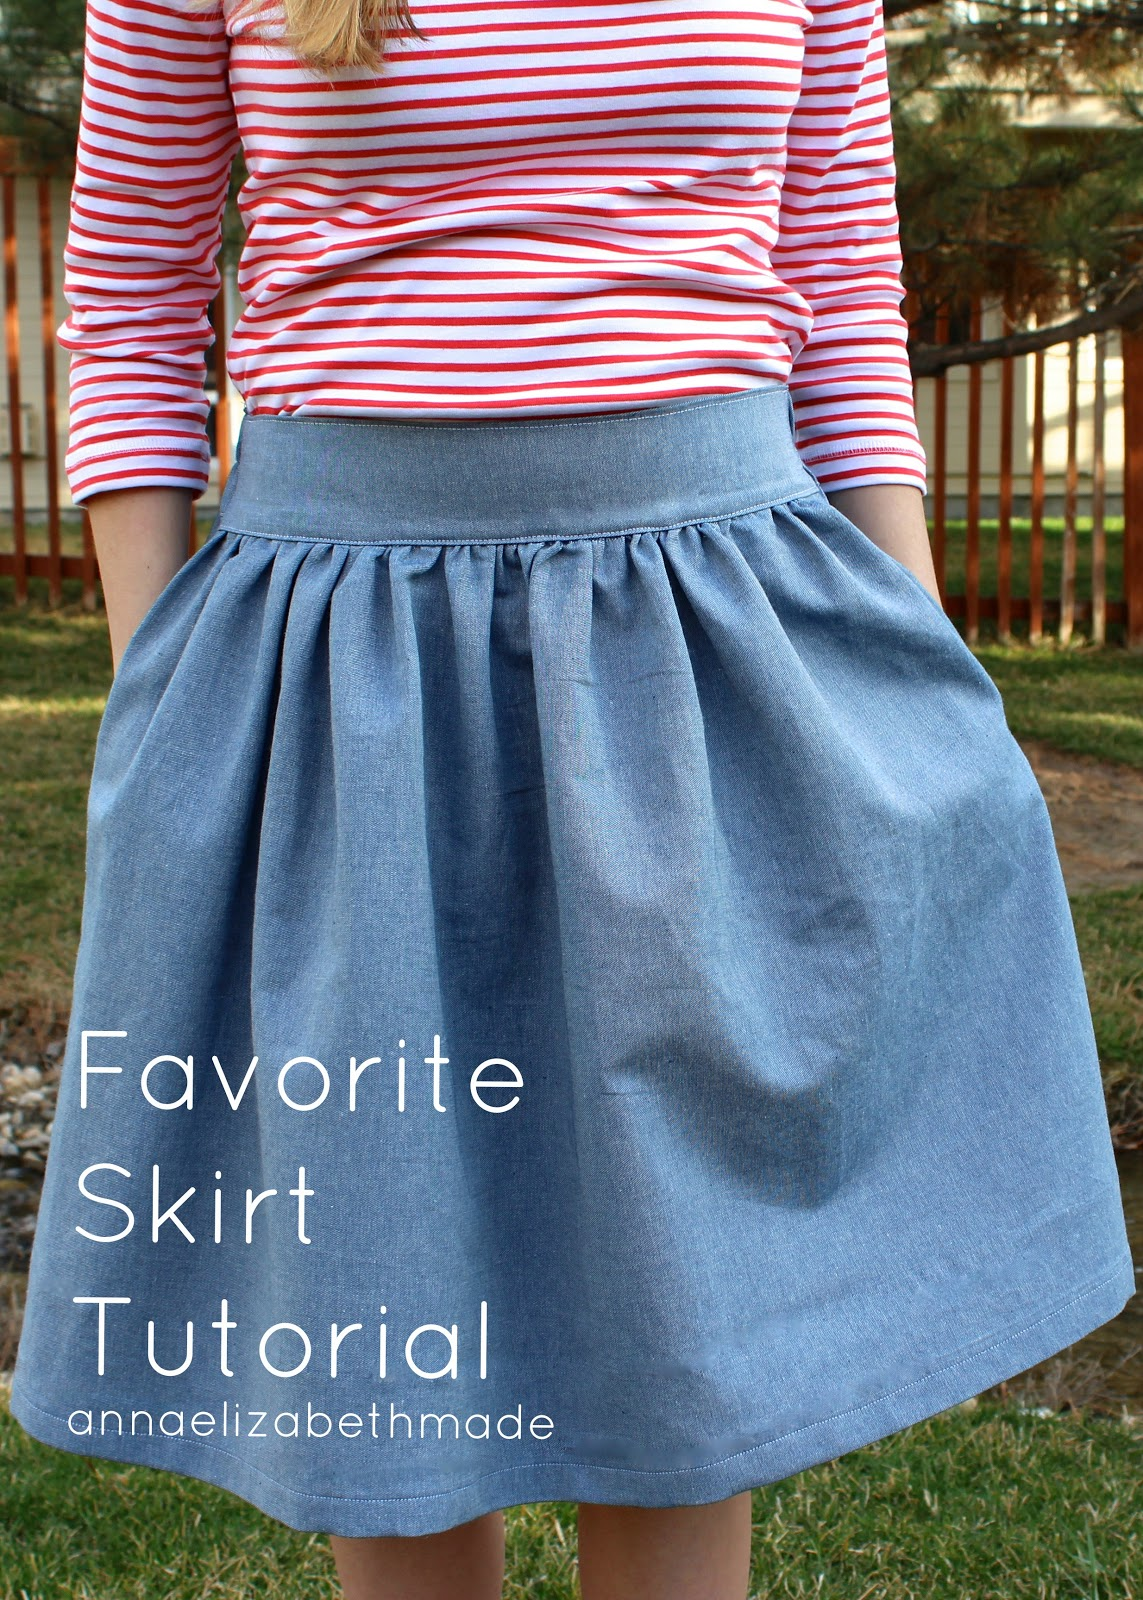 Anna Elizabeth Made My Favorite Skirt Tutorial